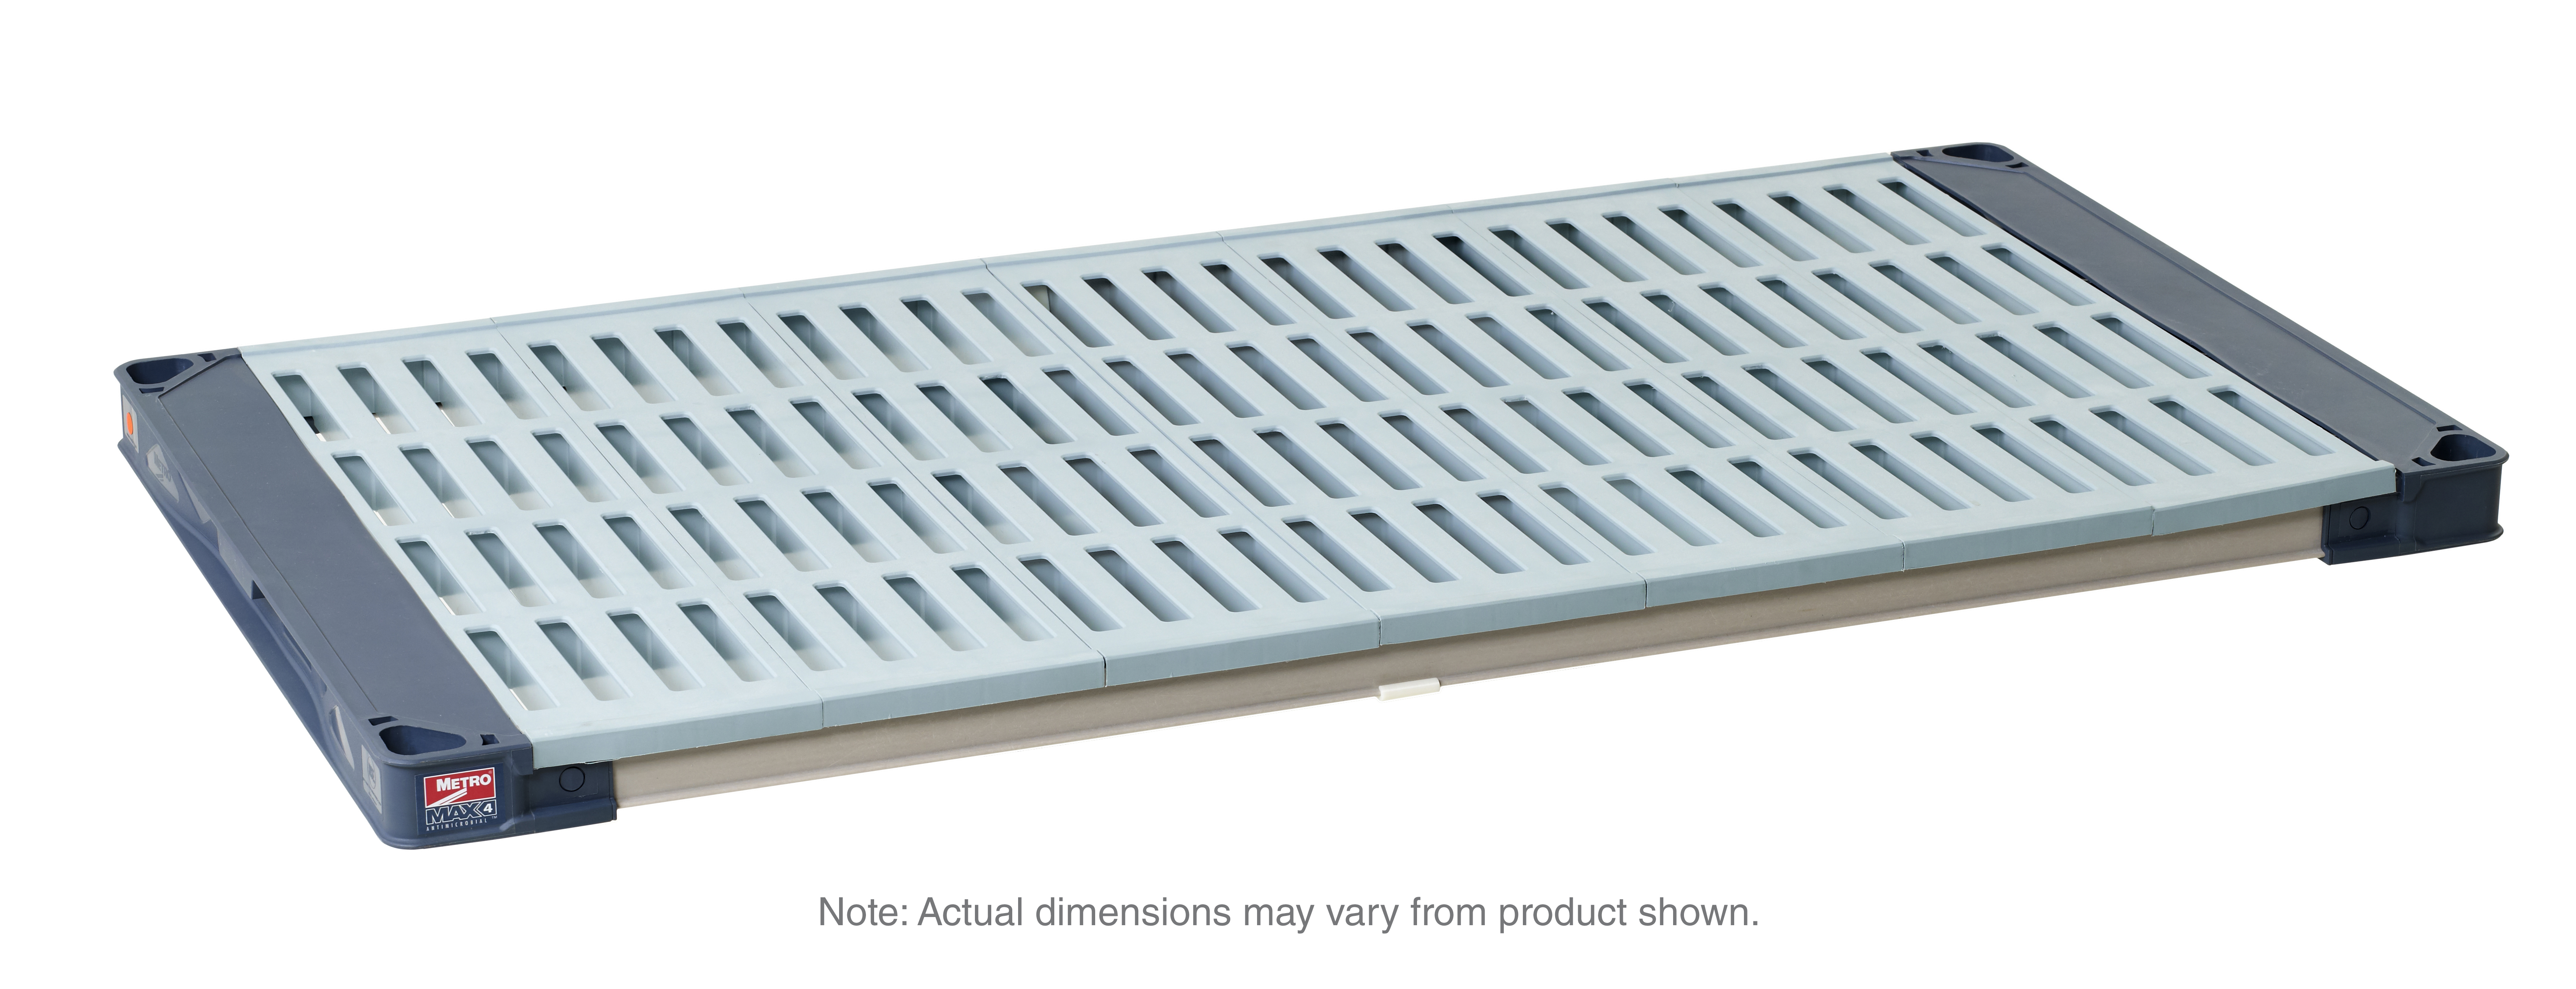 MetroMax 4 18x48 Shelf with Grid Mat